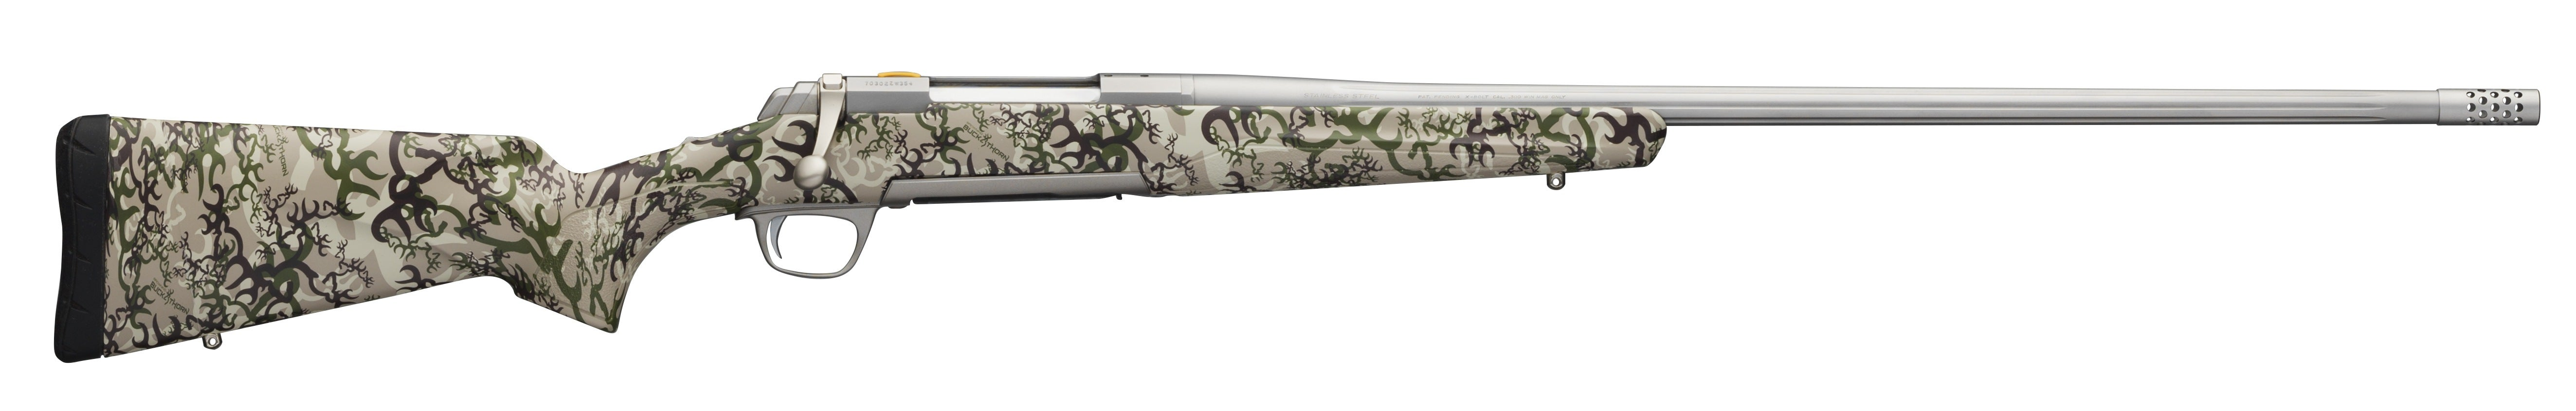 Browning introduces the 26 Nosler in the X-Bolt rifle line